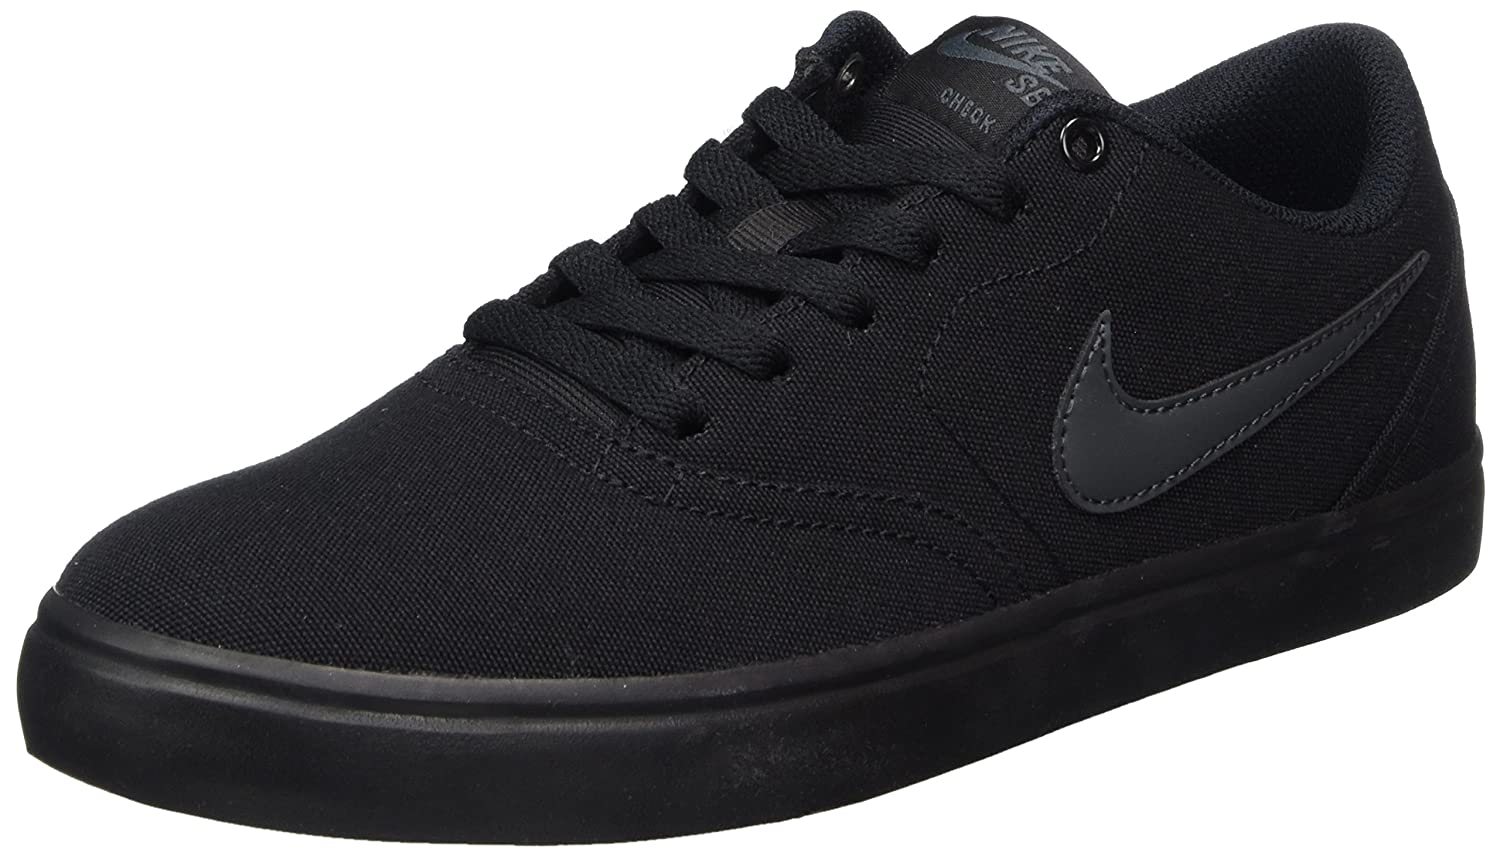 NIKE Men's SB Check Solarsoft Canvas Skateboarding Shoe B0178Q8MS0 11 D(M) US|Black/Anthracite